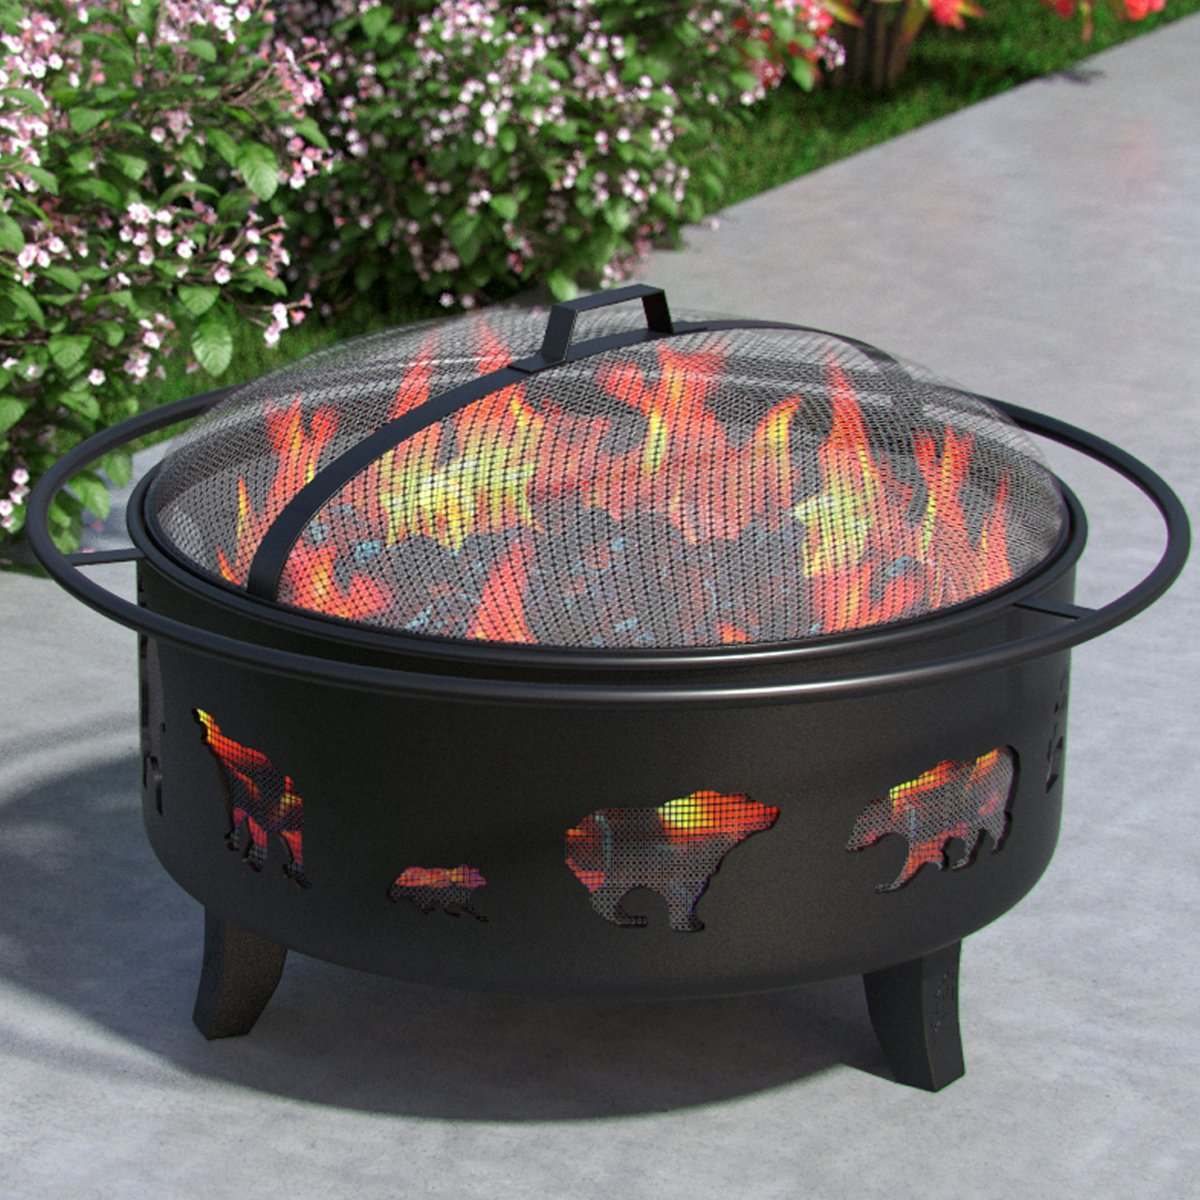 Wild Bear 35 Quot Portable Outdoor Fireplace Fire Pit Ring For